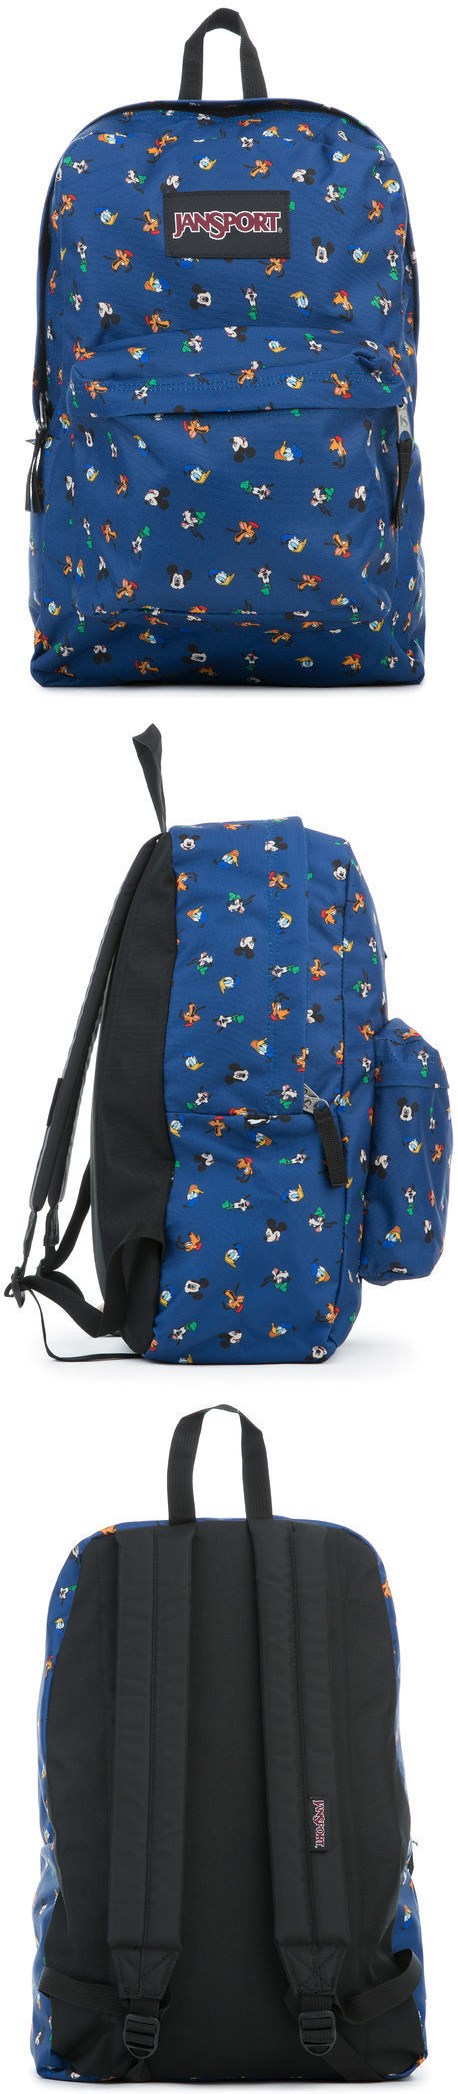 e195404b966 Jansport Disney Gang Dot Backpack